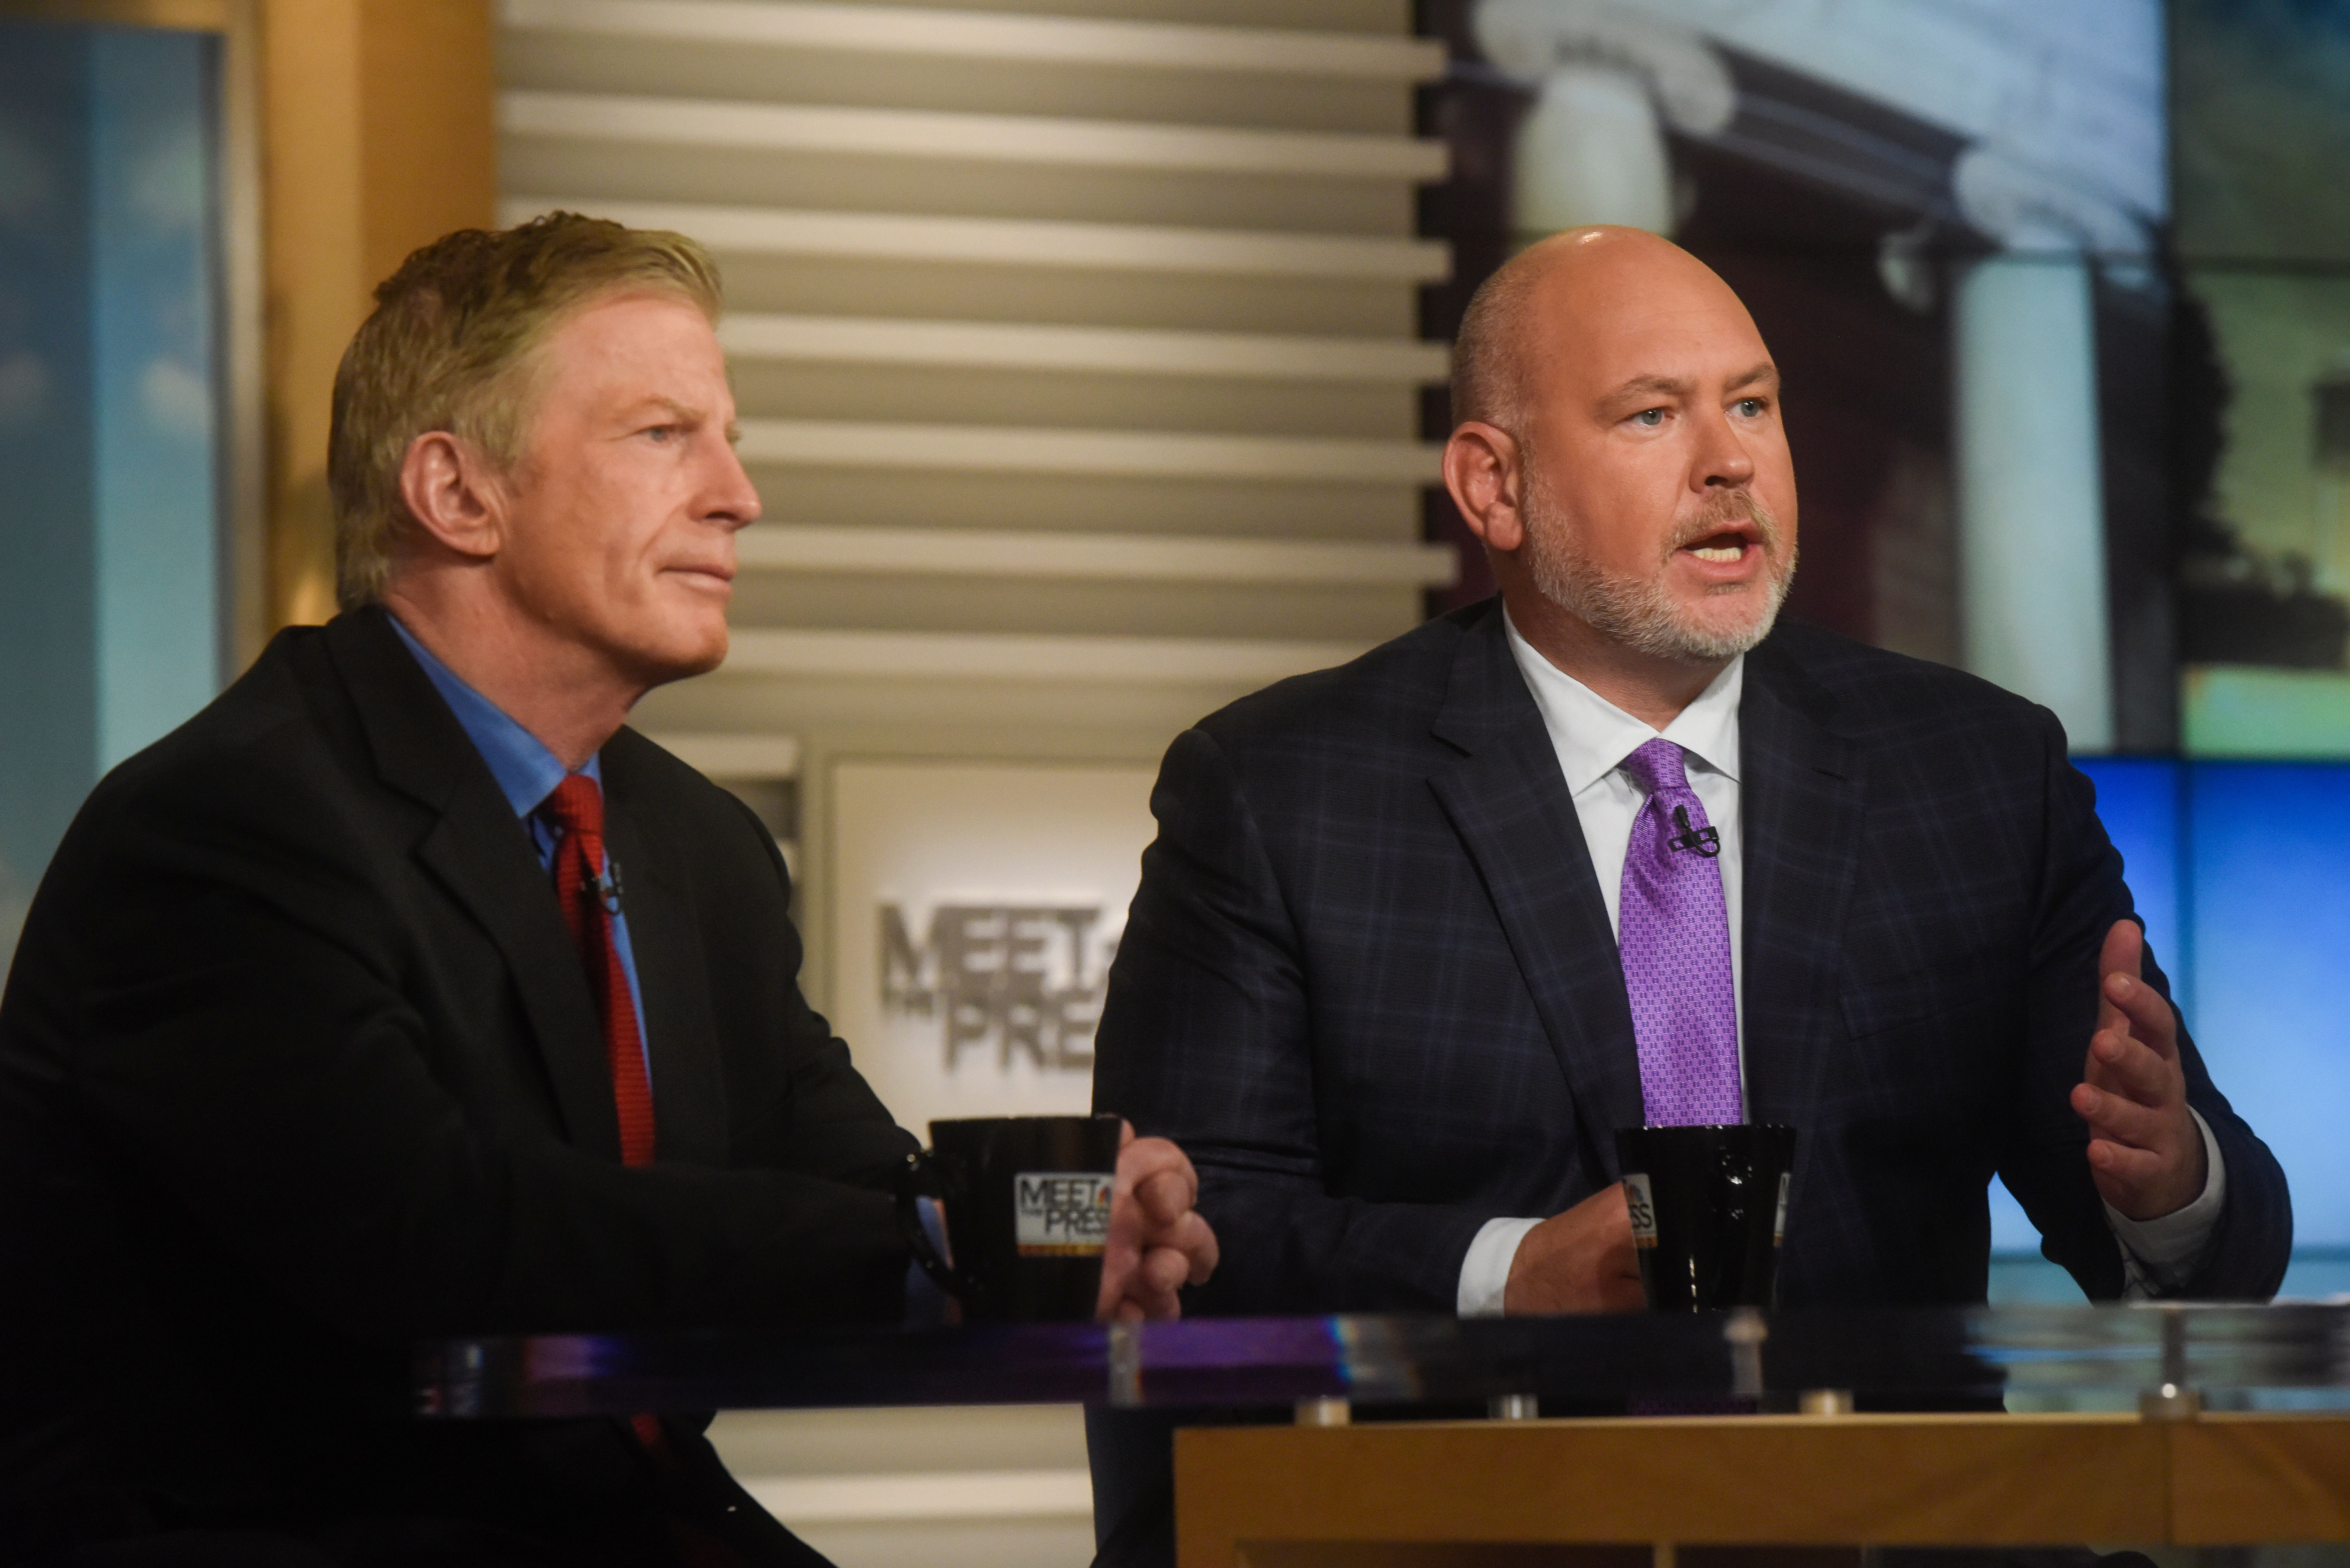 MEET THE PRESS -- Pictured: (l-r) ? Stuart Stevens, Former Strategist, 2012 Romney Presidential Campaign, left, and Steve Schmidt, MSNBC Contributor; Former Strategist, 2008 McCain Presidential Campaign, right, appear on 'Meet the Press' in Washington, D.C., Sunday March 20, 2016.  (Photo by: William B. Plowman/NBC/NBC NewsWire via Getty Images)